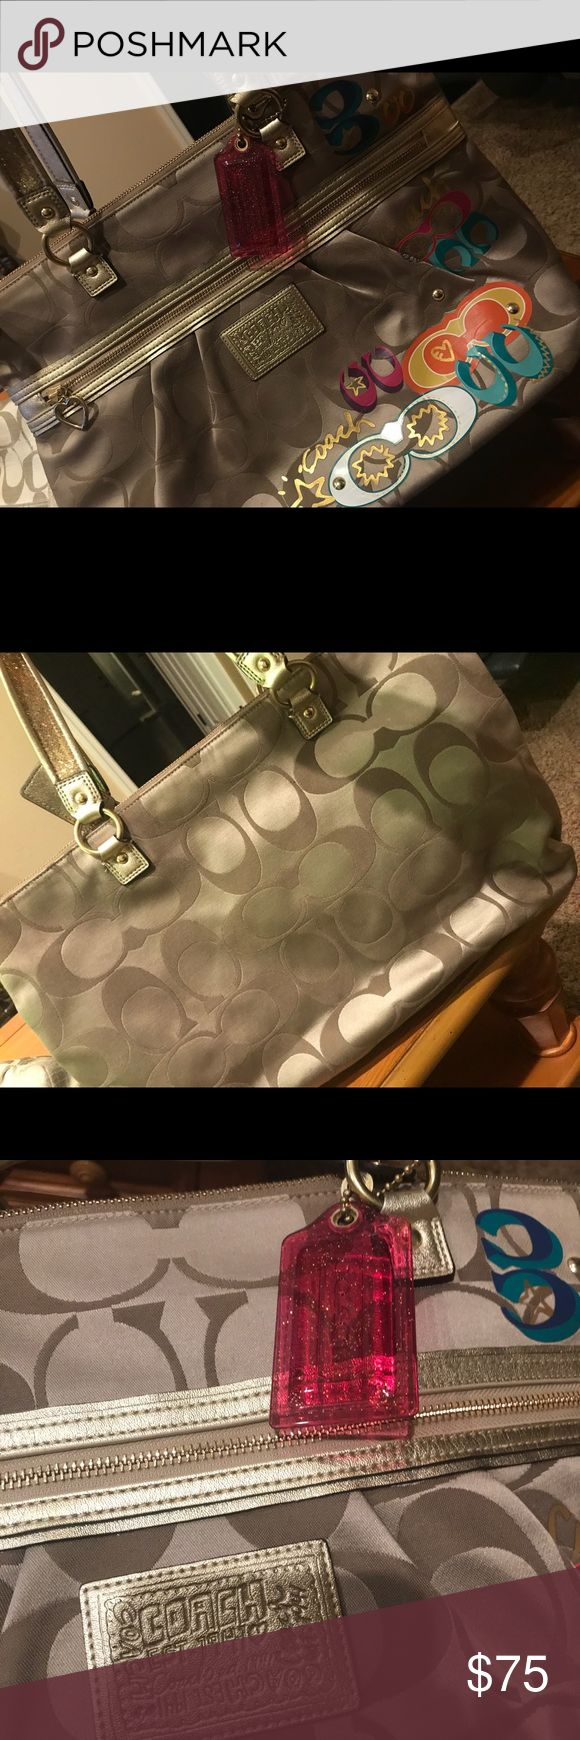 Coach Pocketbook Large Coach pocketbook. 2 Large Zippers with pink interior Great as a day bag Great condition  Willing to negotiate Coach Bags